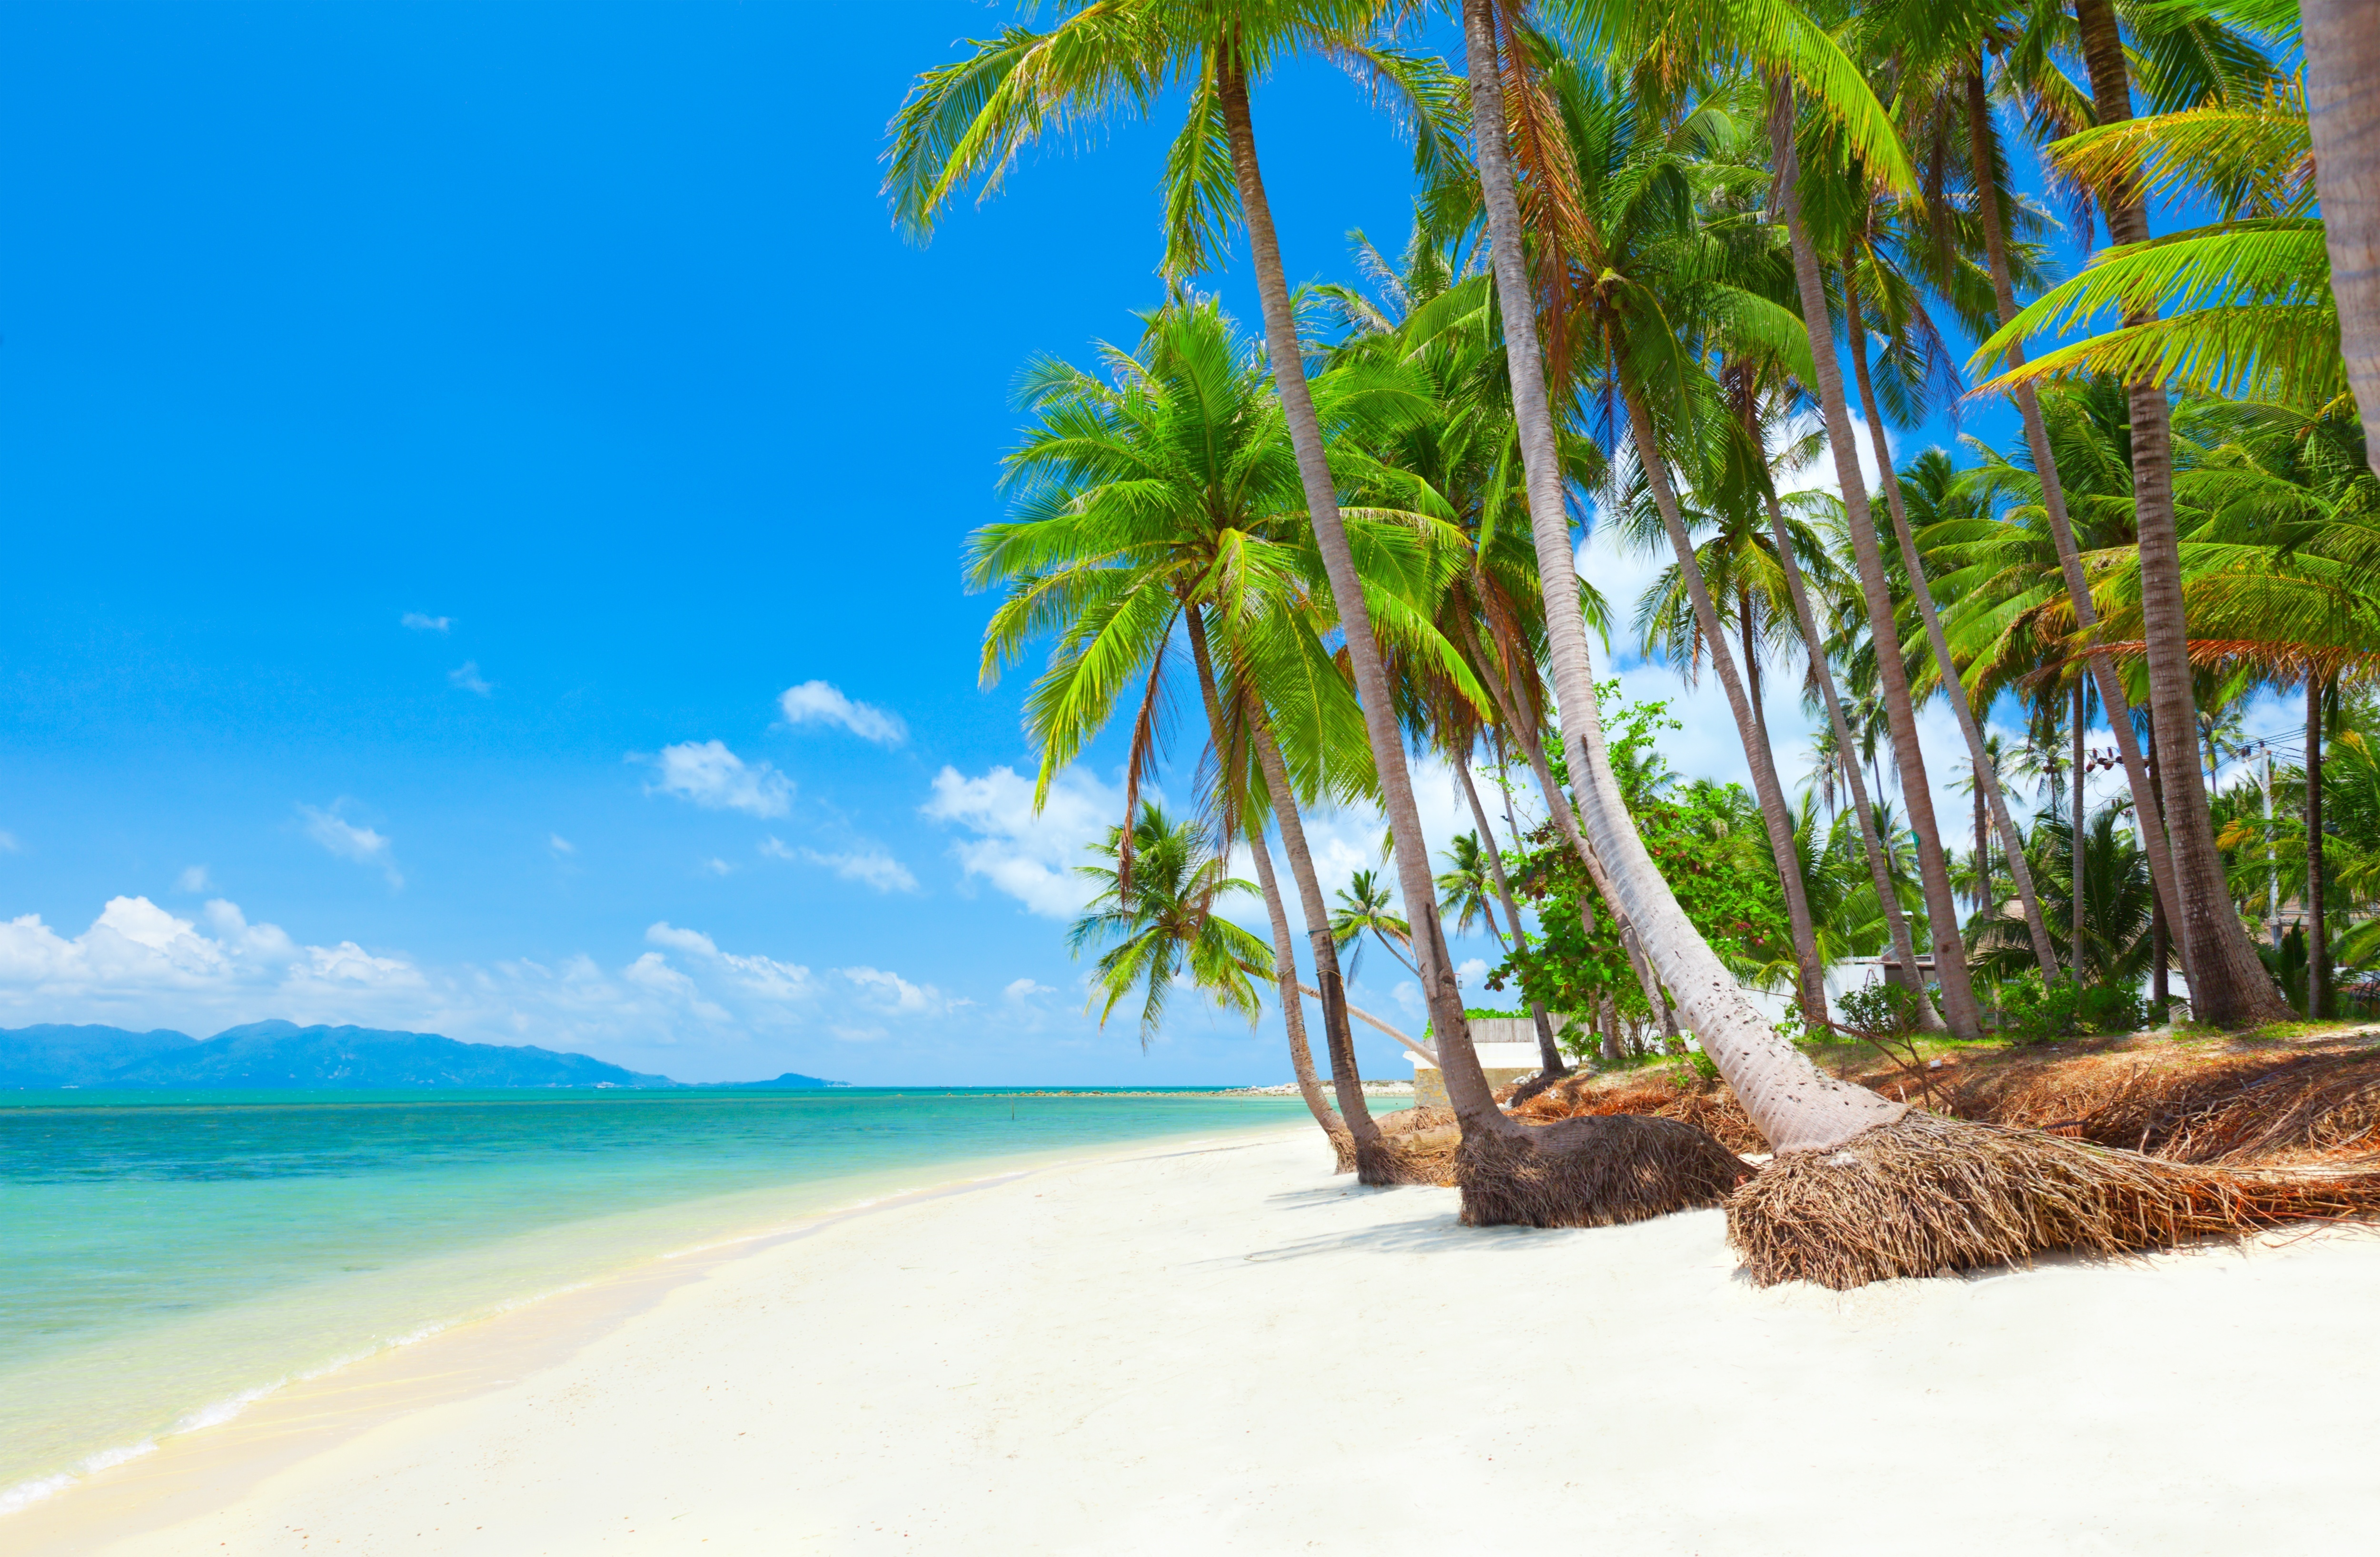 Big tropical beach with coconut palm trees. koh samui  thailand